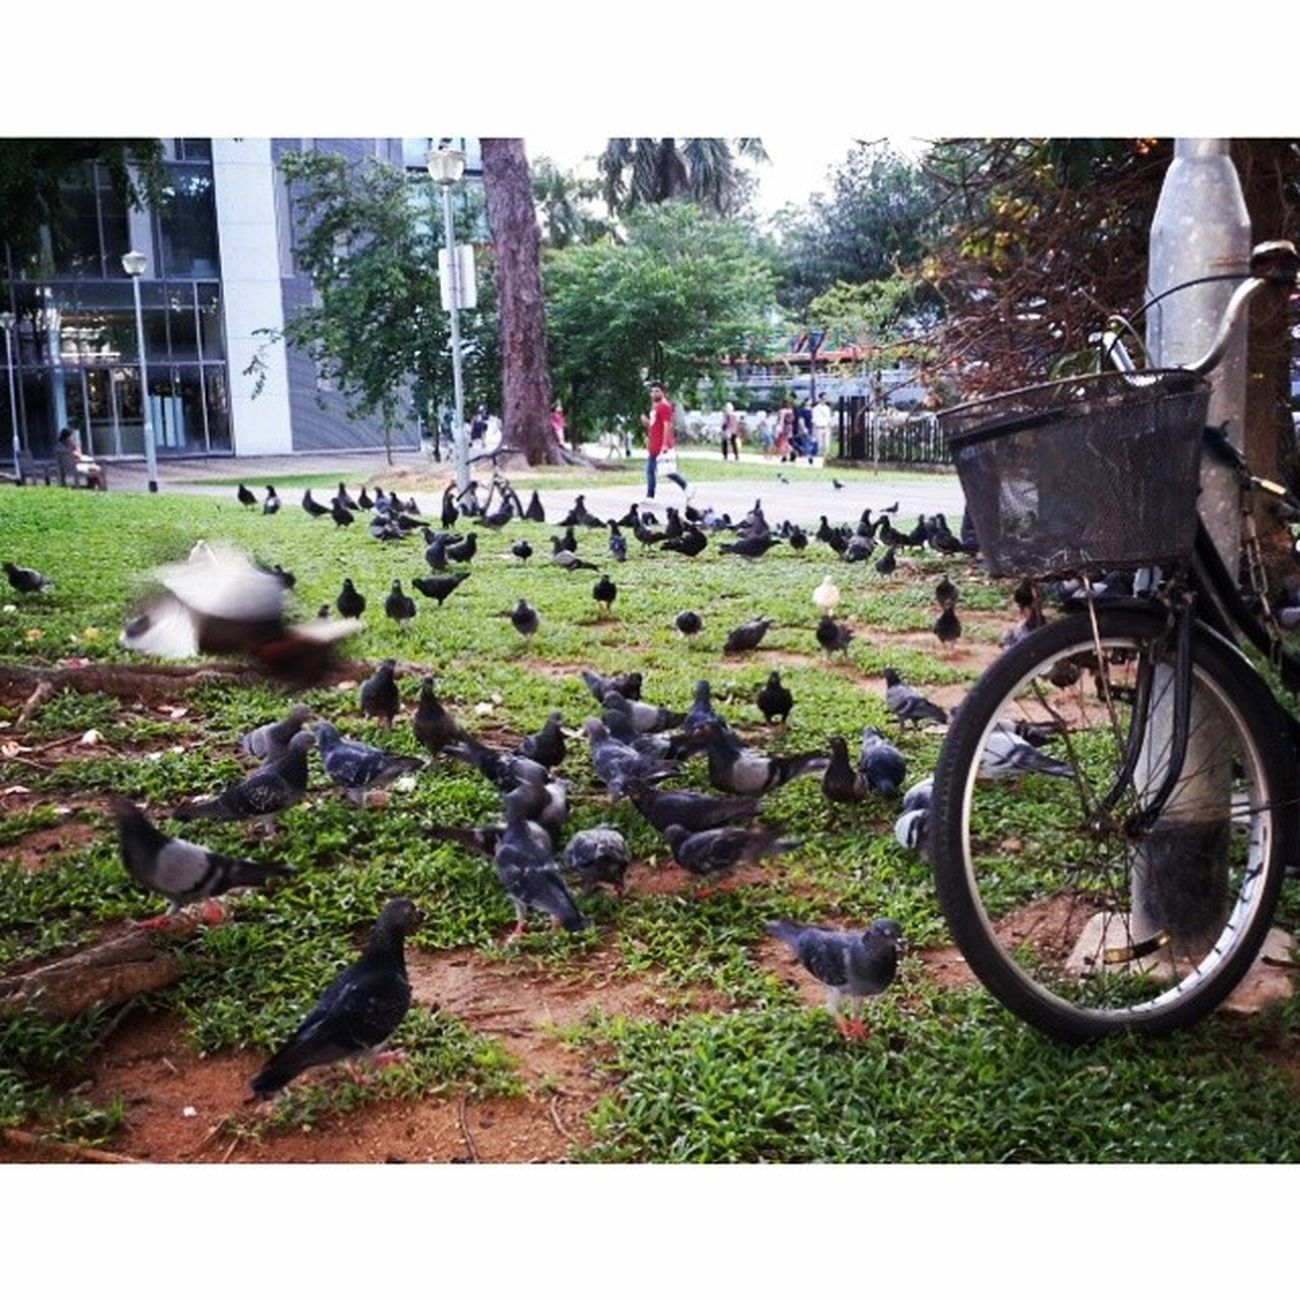 Birds at Outram Park Singapore 20140531 Follow Like Album Adventure Traveller Traveling Trip World WorldWide photography photooftheday